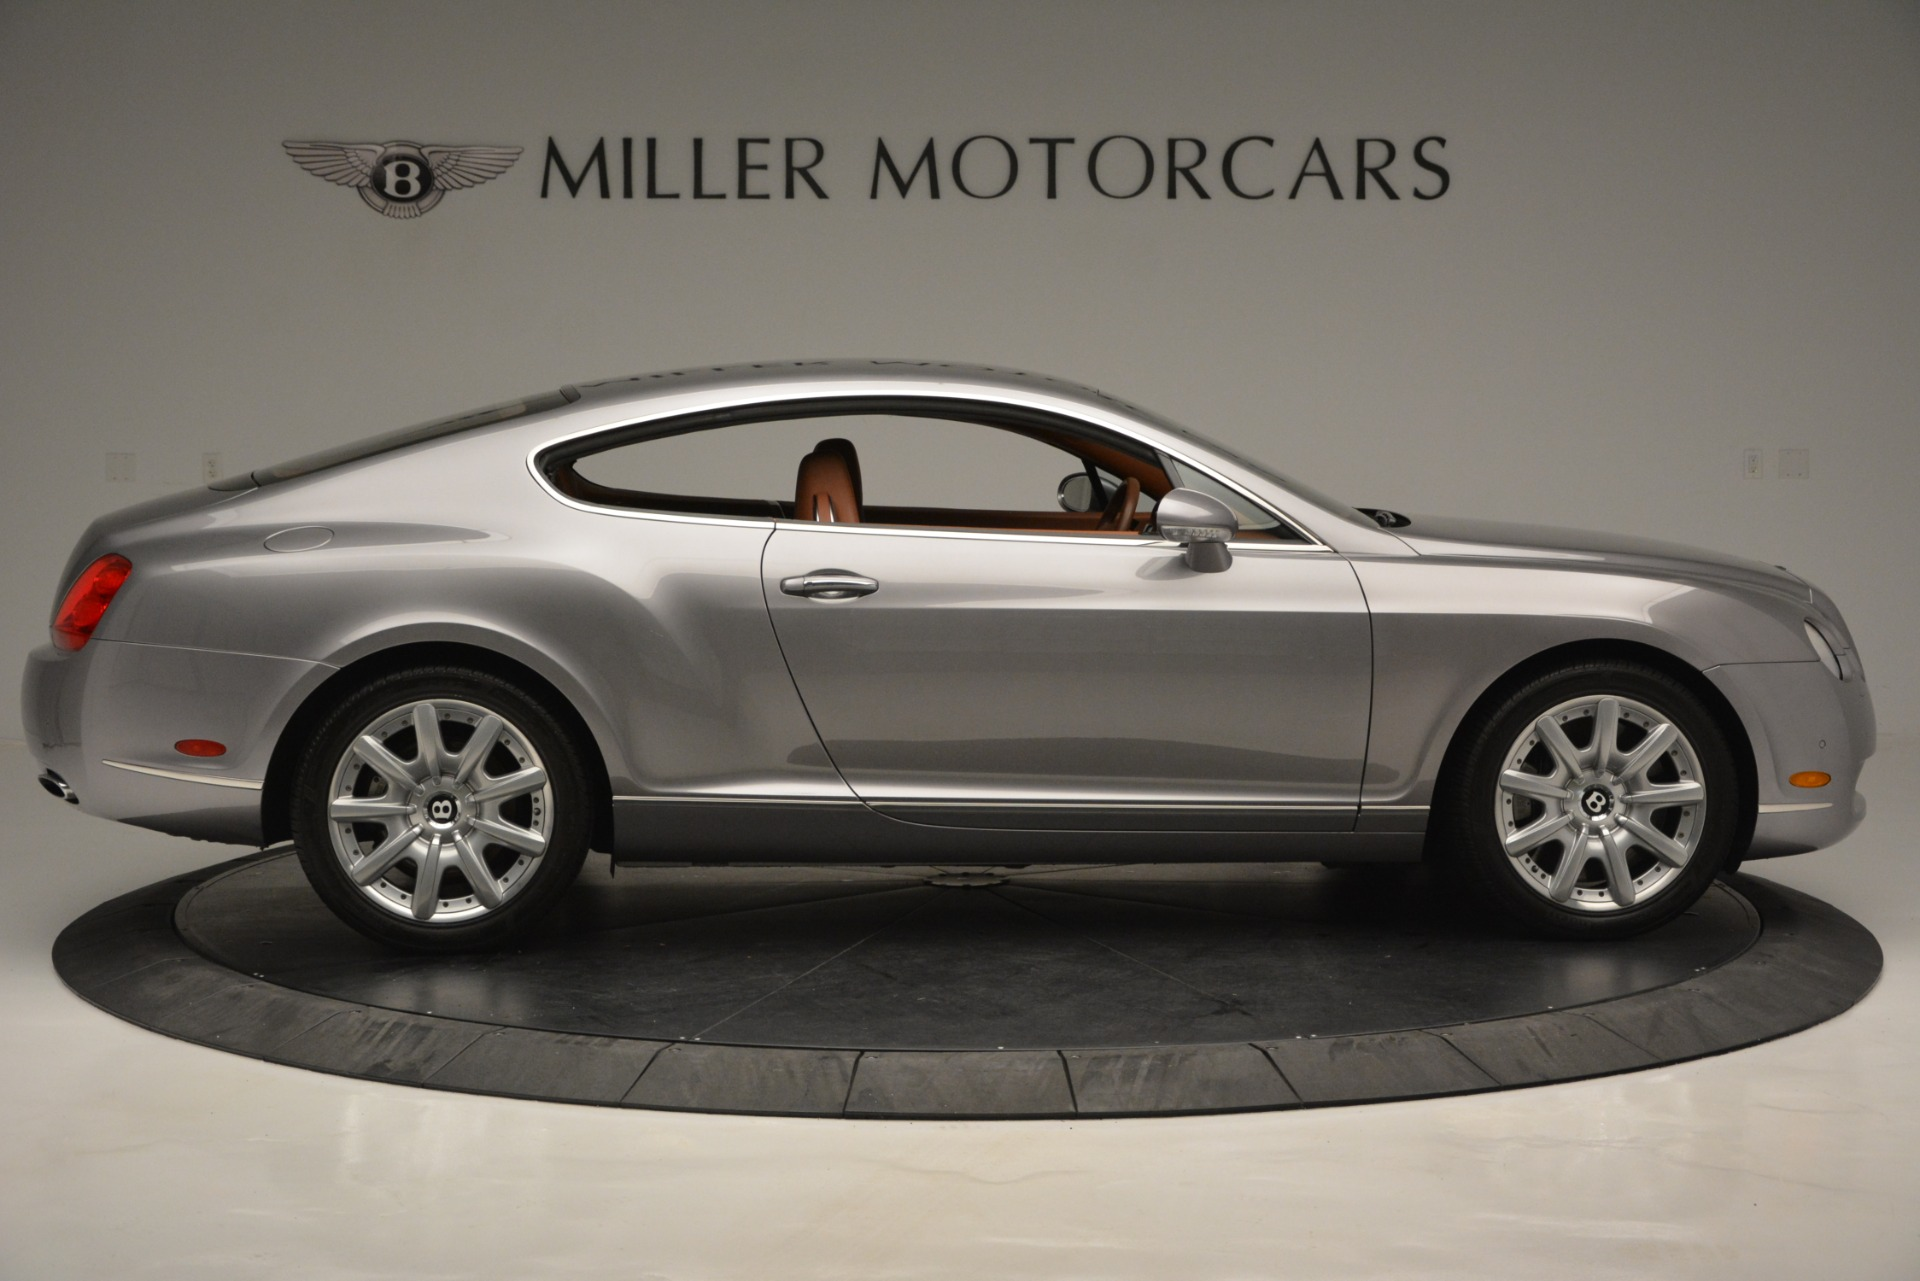 Used 2005 Bentley Continental GT GT Turbo For Sale In Westport, CT 2726_p9